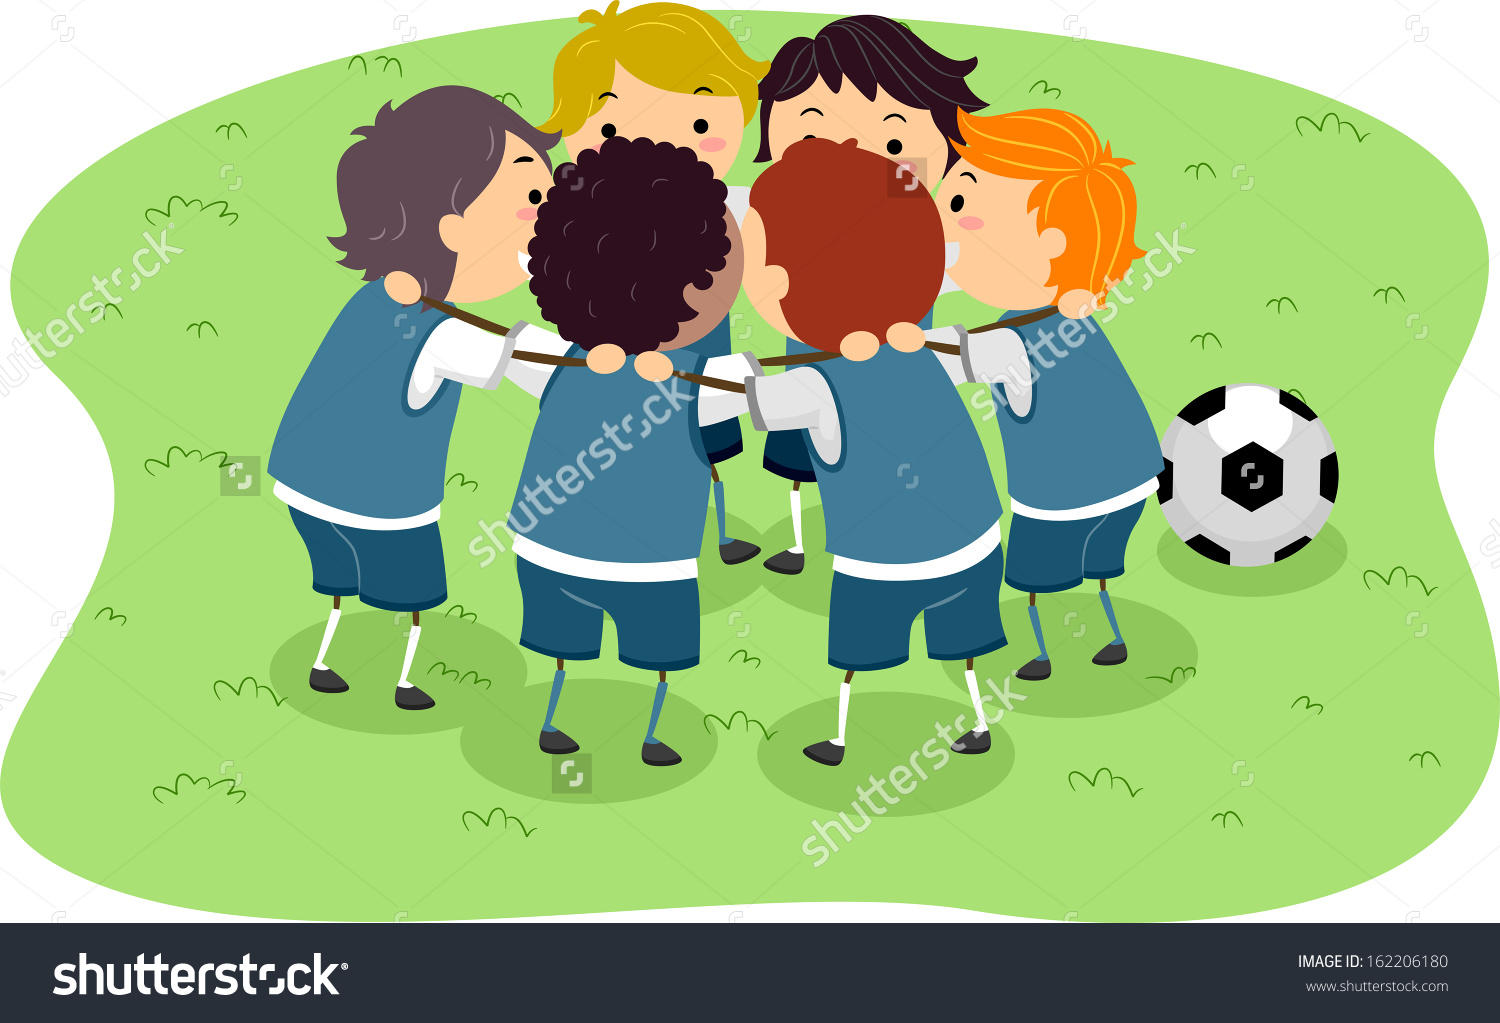 Soccer clipart soccer game Clipart Soccer Playing Playing Clipart